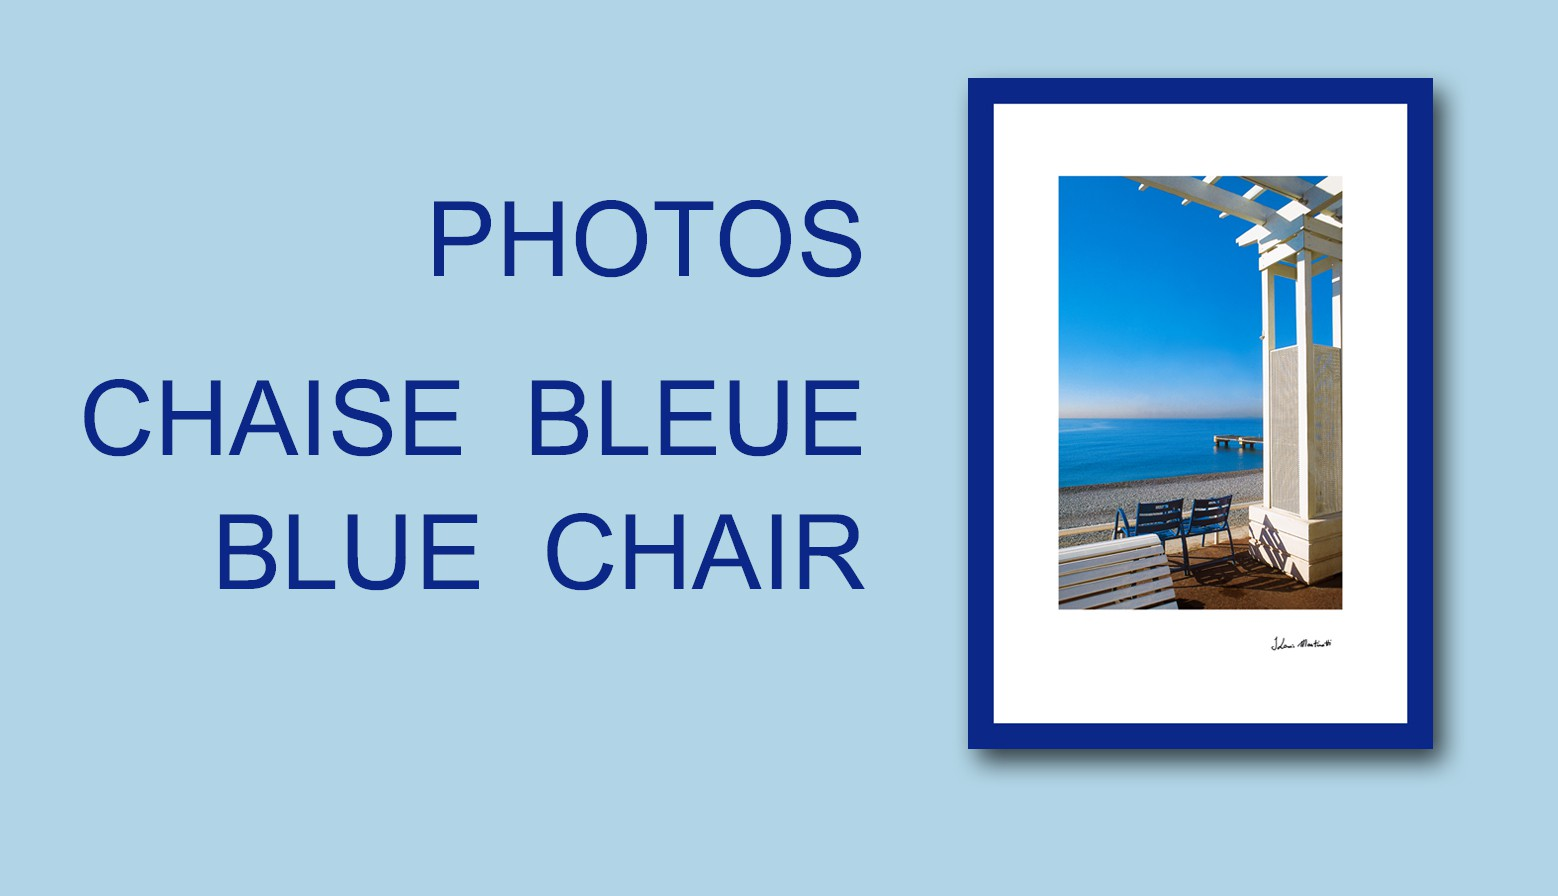 chaise bleue / blue chair